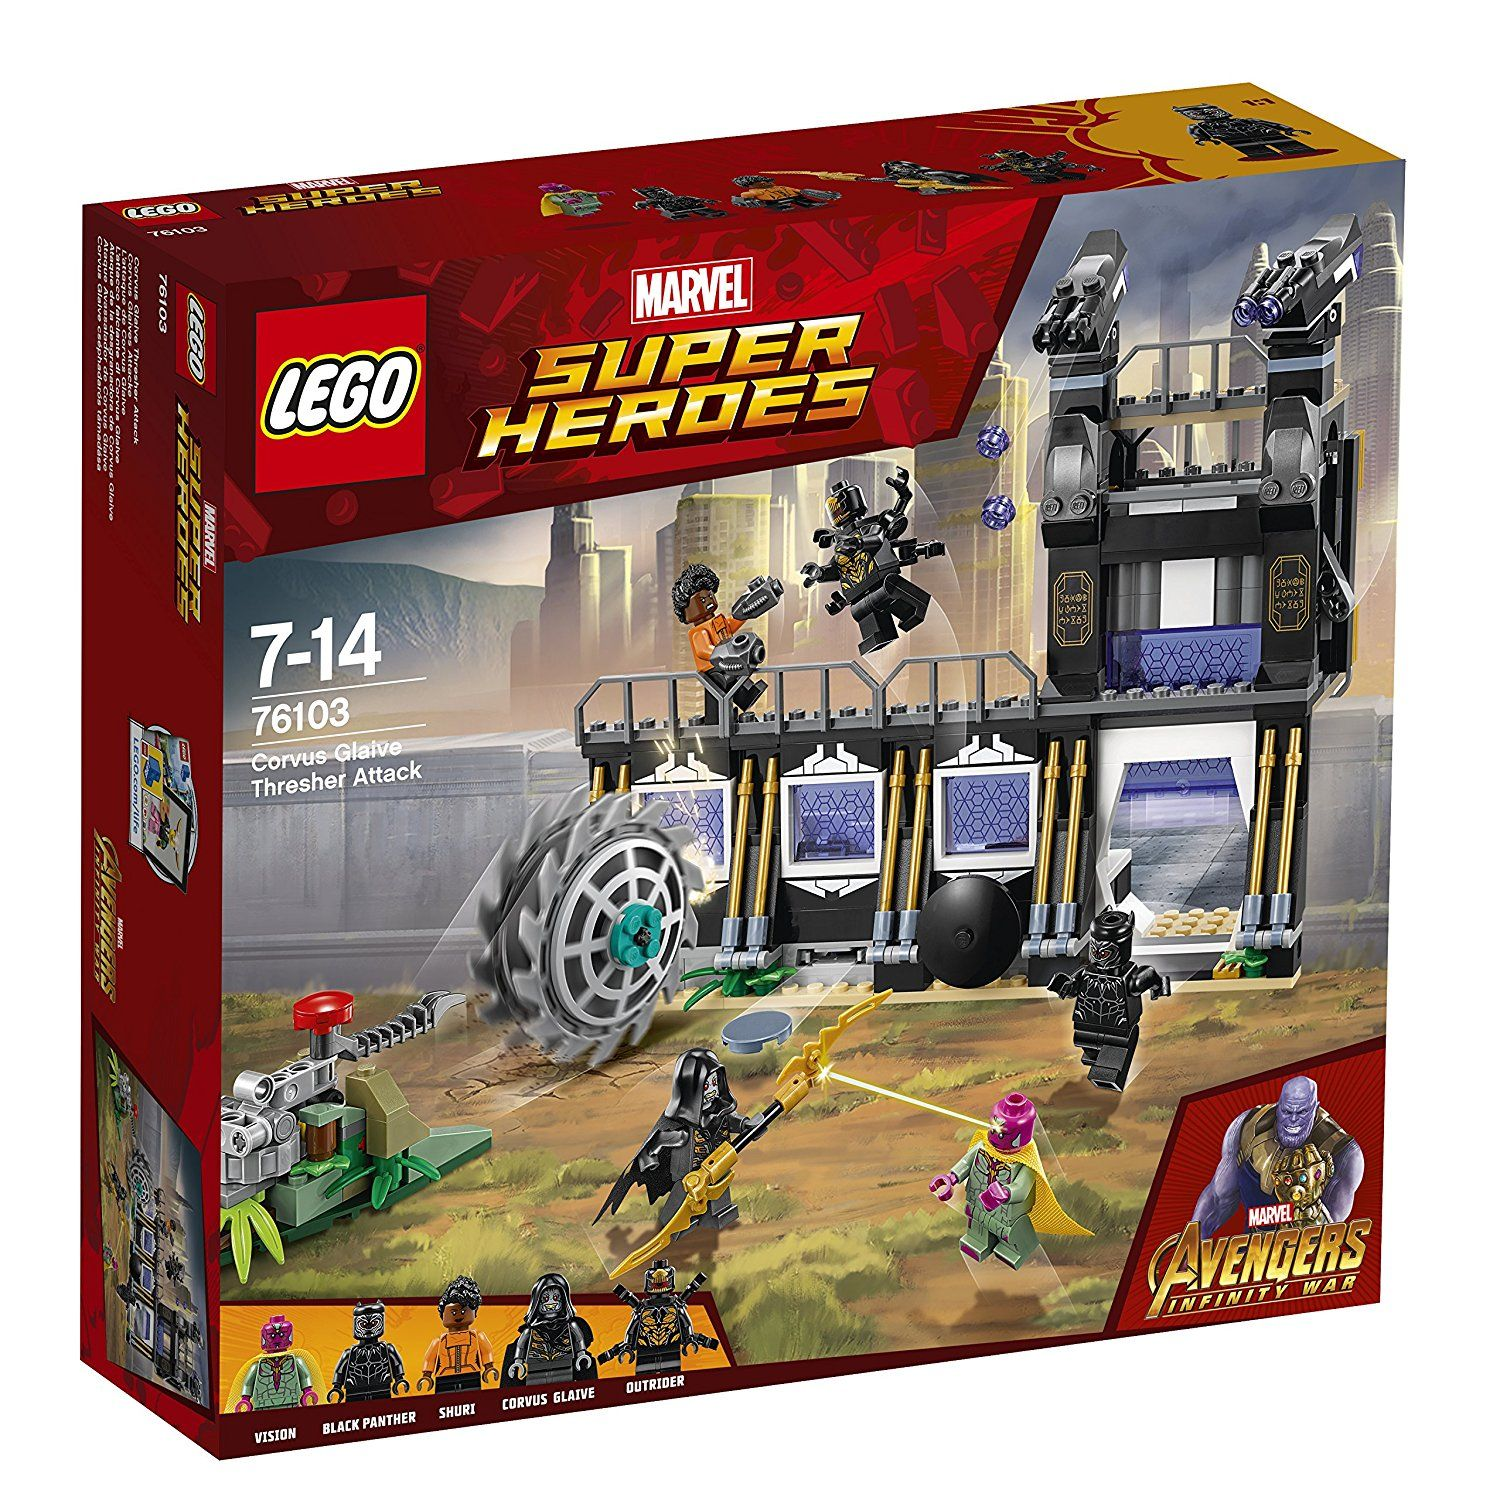 Marvel Avengers Infinity War Lego Sets Out Now Lego Marvel Super Heroes Corvus Glaive Lego Super Heroes